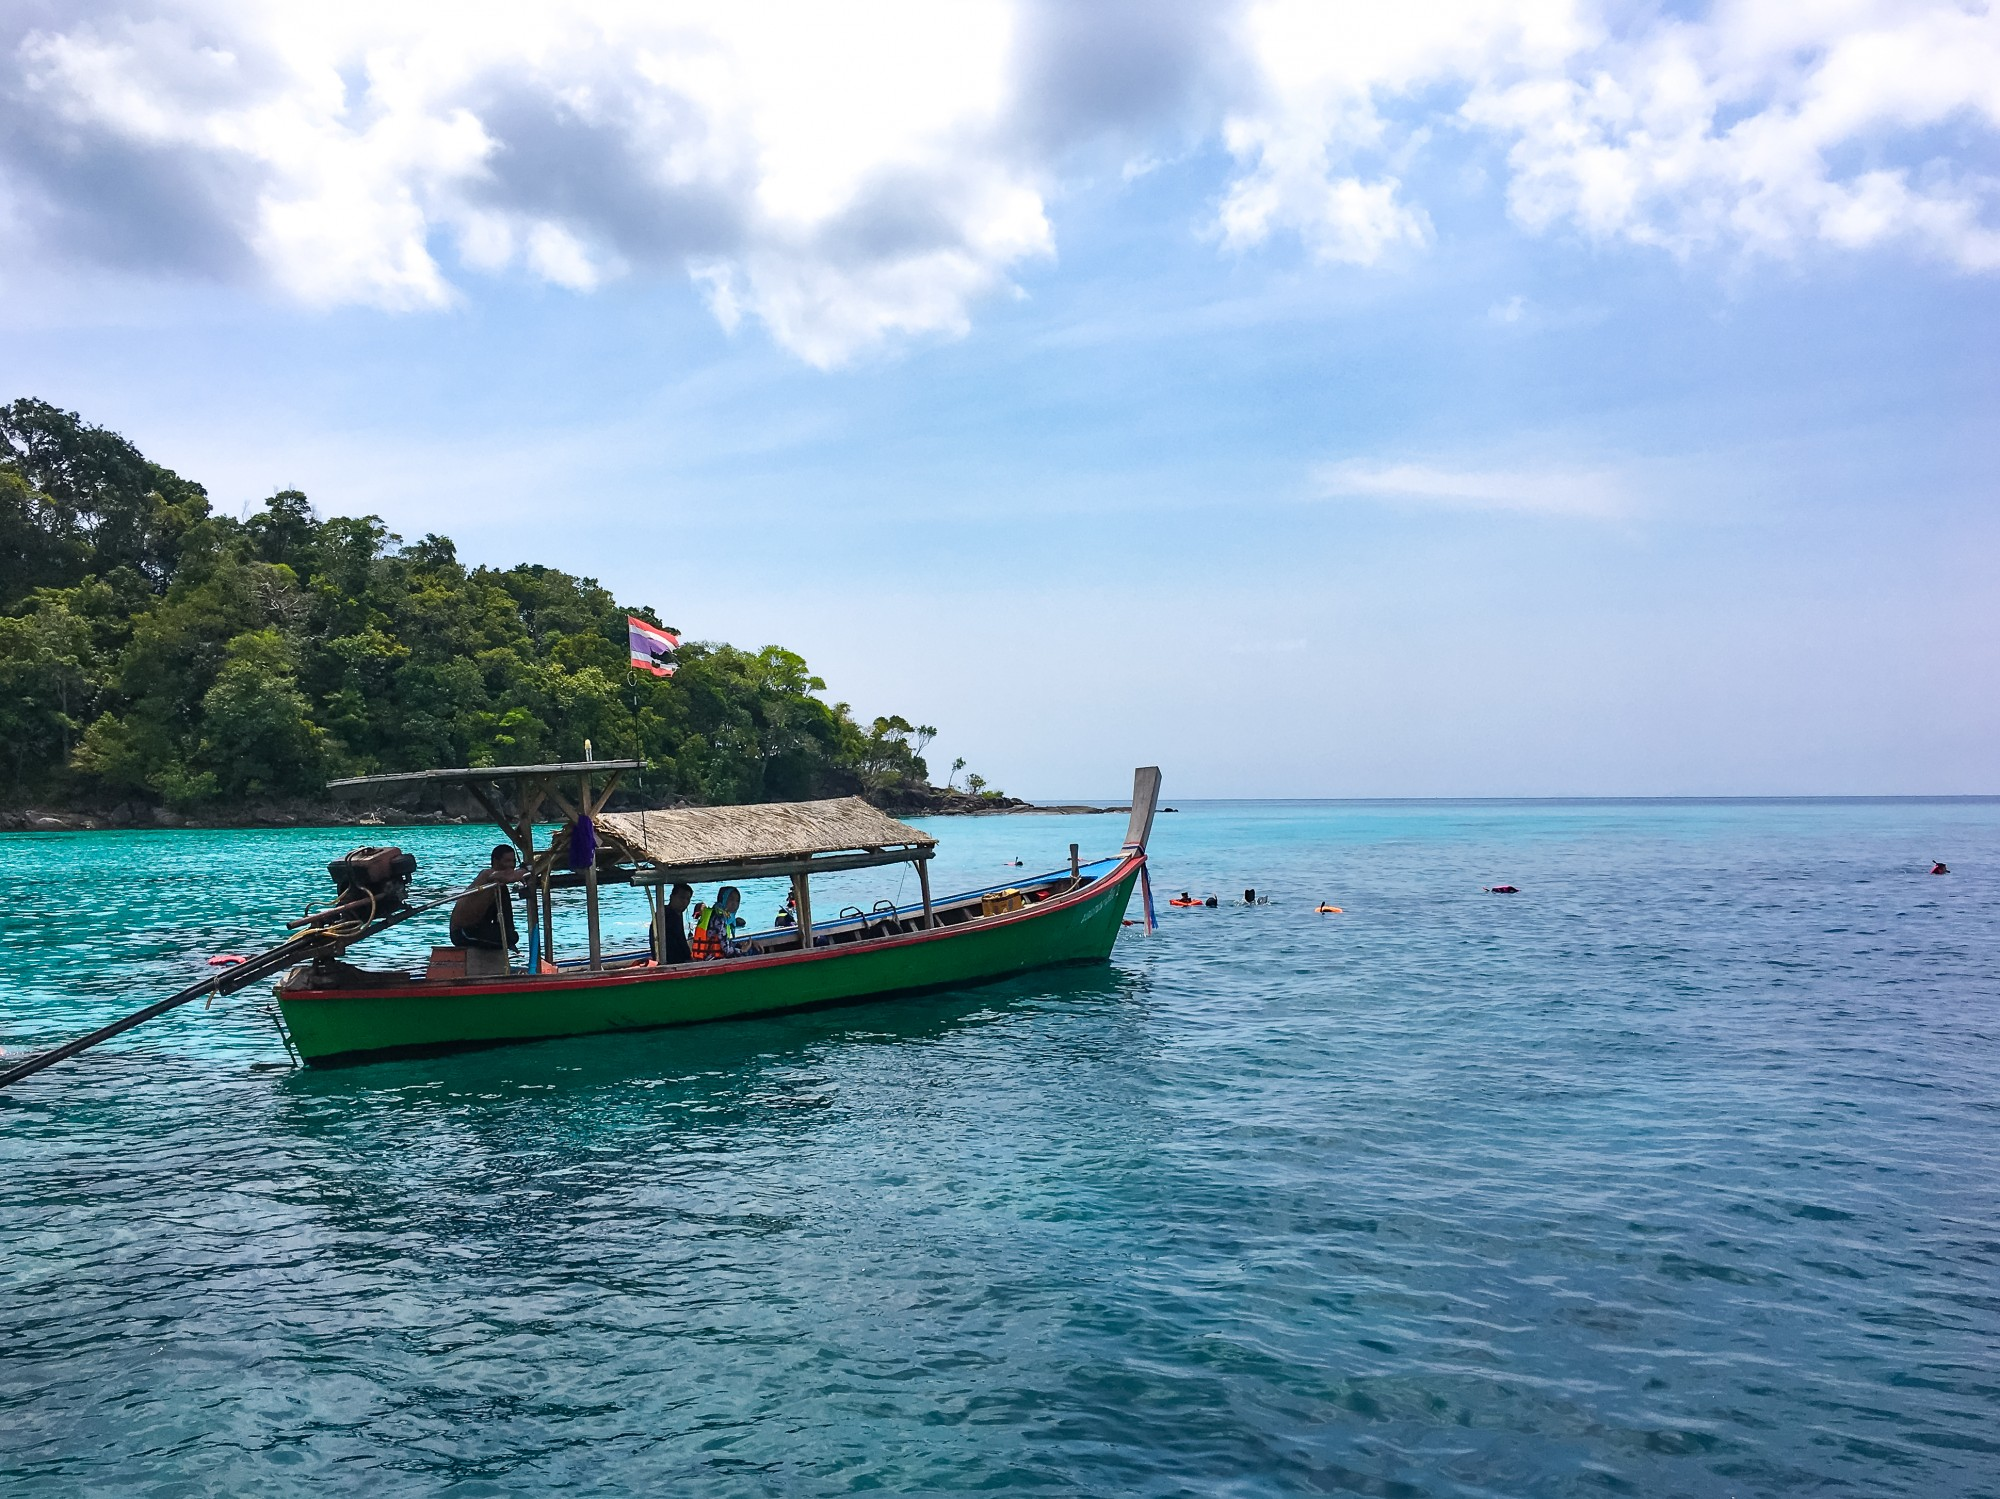 Snorkelling at Chong Kad Channel, Surin Islands